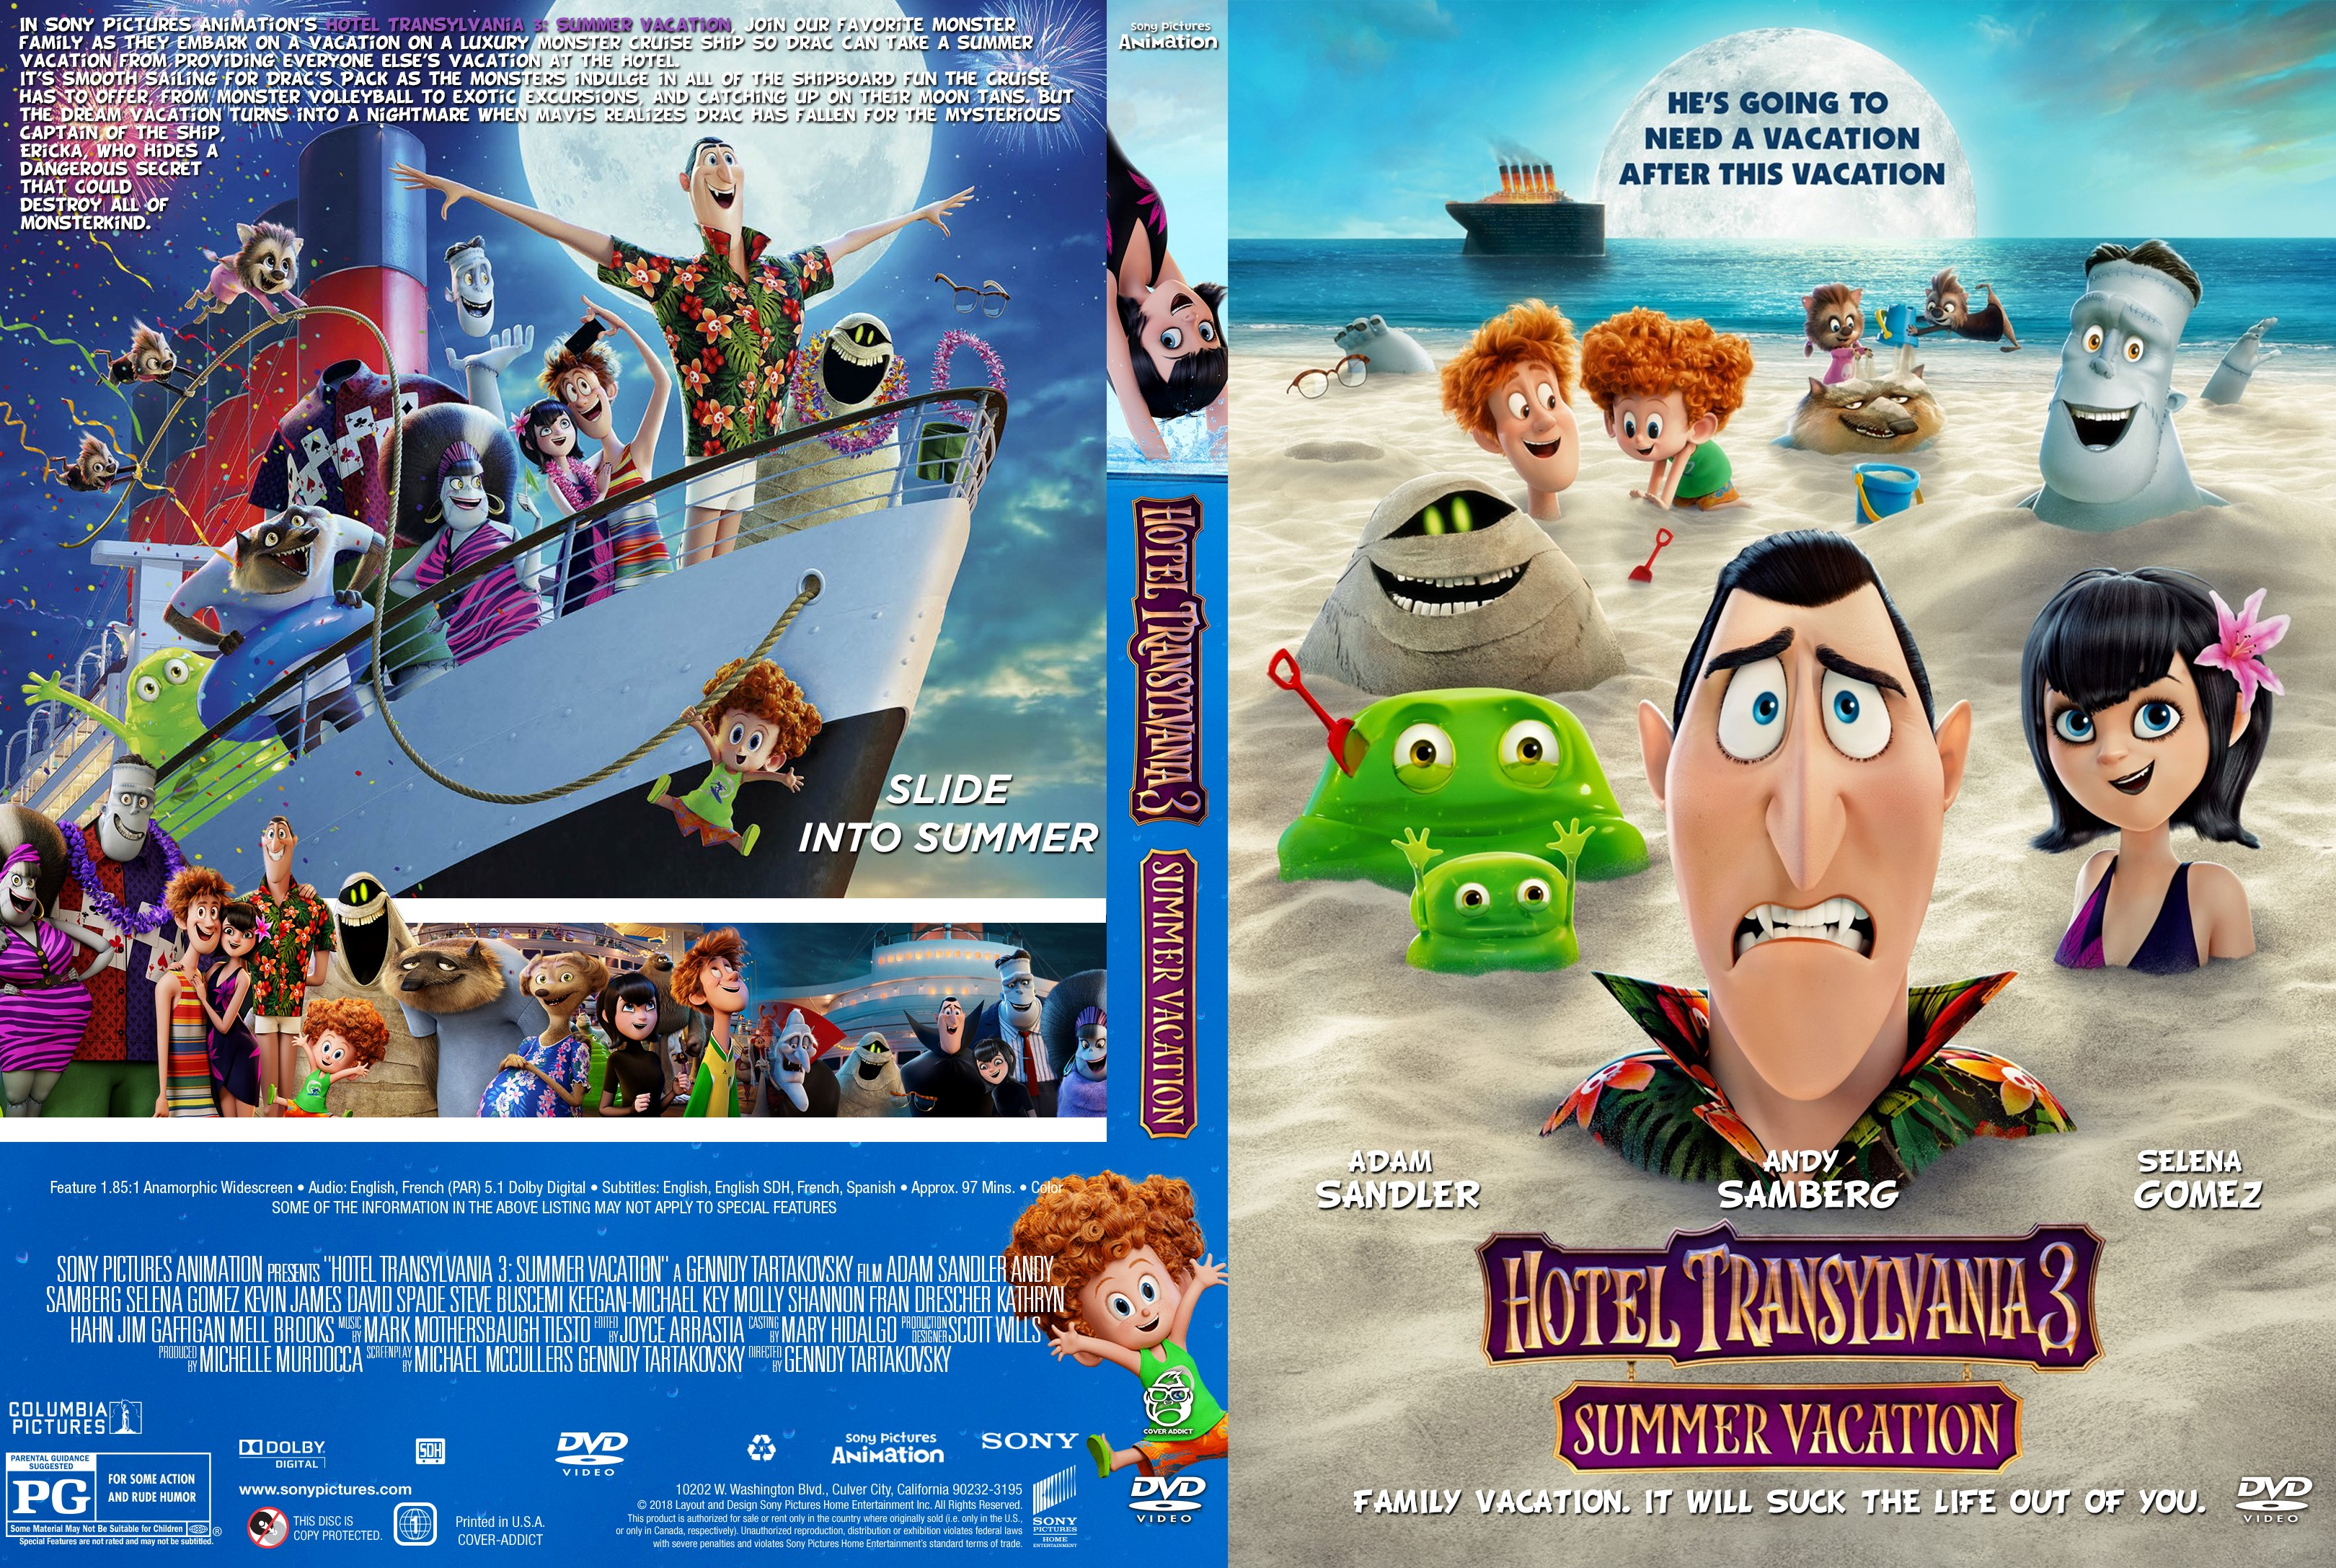 Hotel Transylvania 3 Summer Vacation DVD Cover